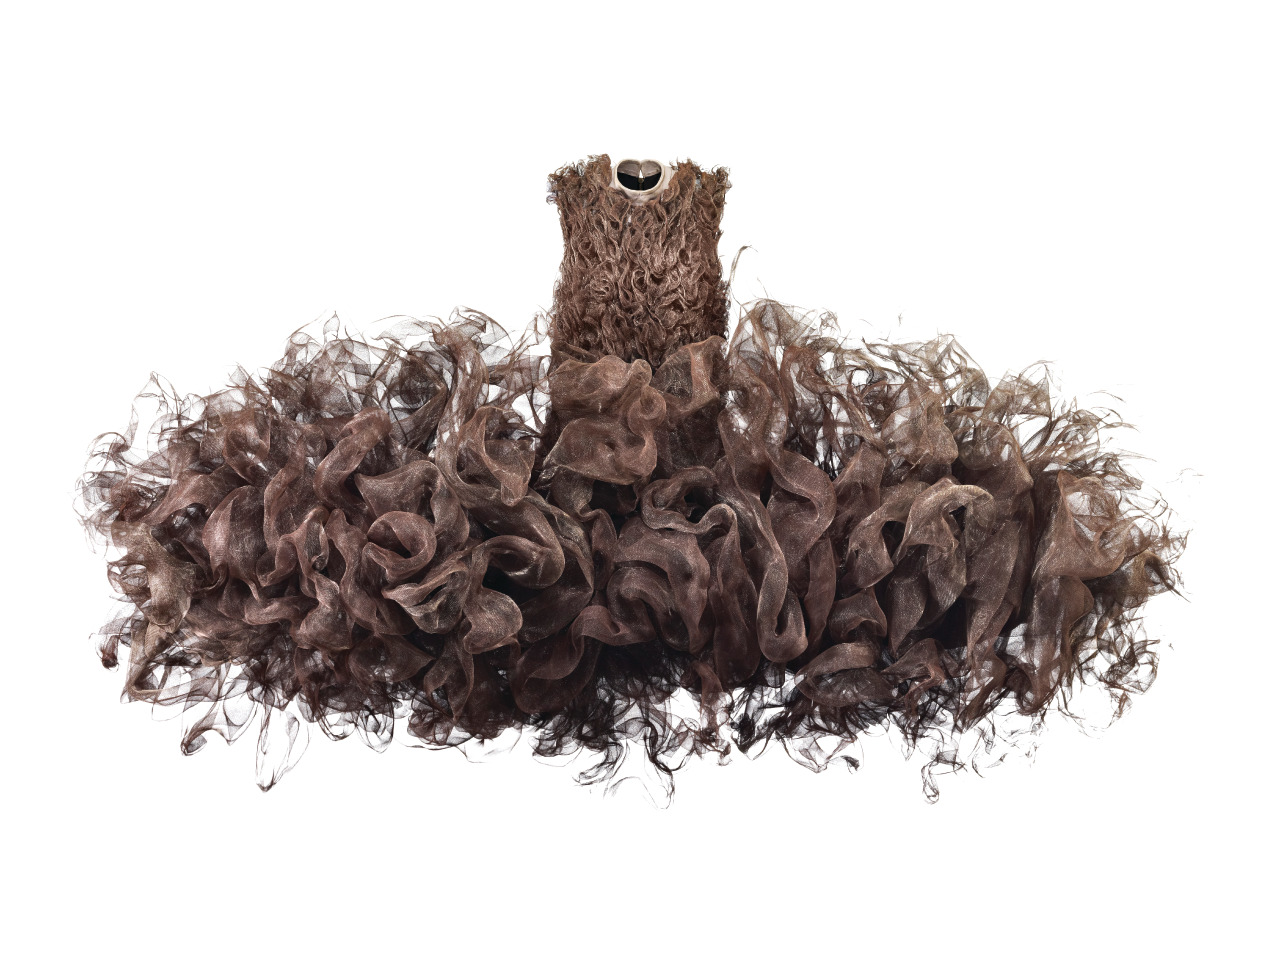 Iris van Herpen (b. 1984), The Netherlands, Refinery Smoke, Dress, July 2008, untreated woven metal gauze and cow leather, Groninger Museum, 2012.0196. Photo by Bart Oomes, No 6 Studios